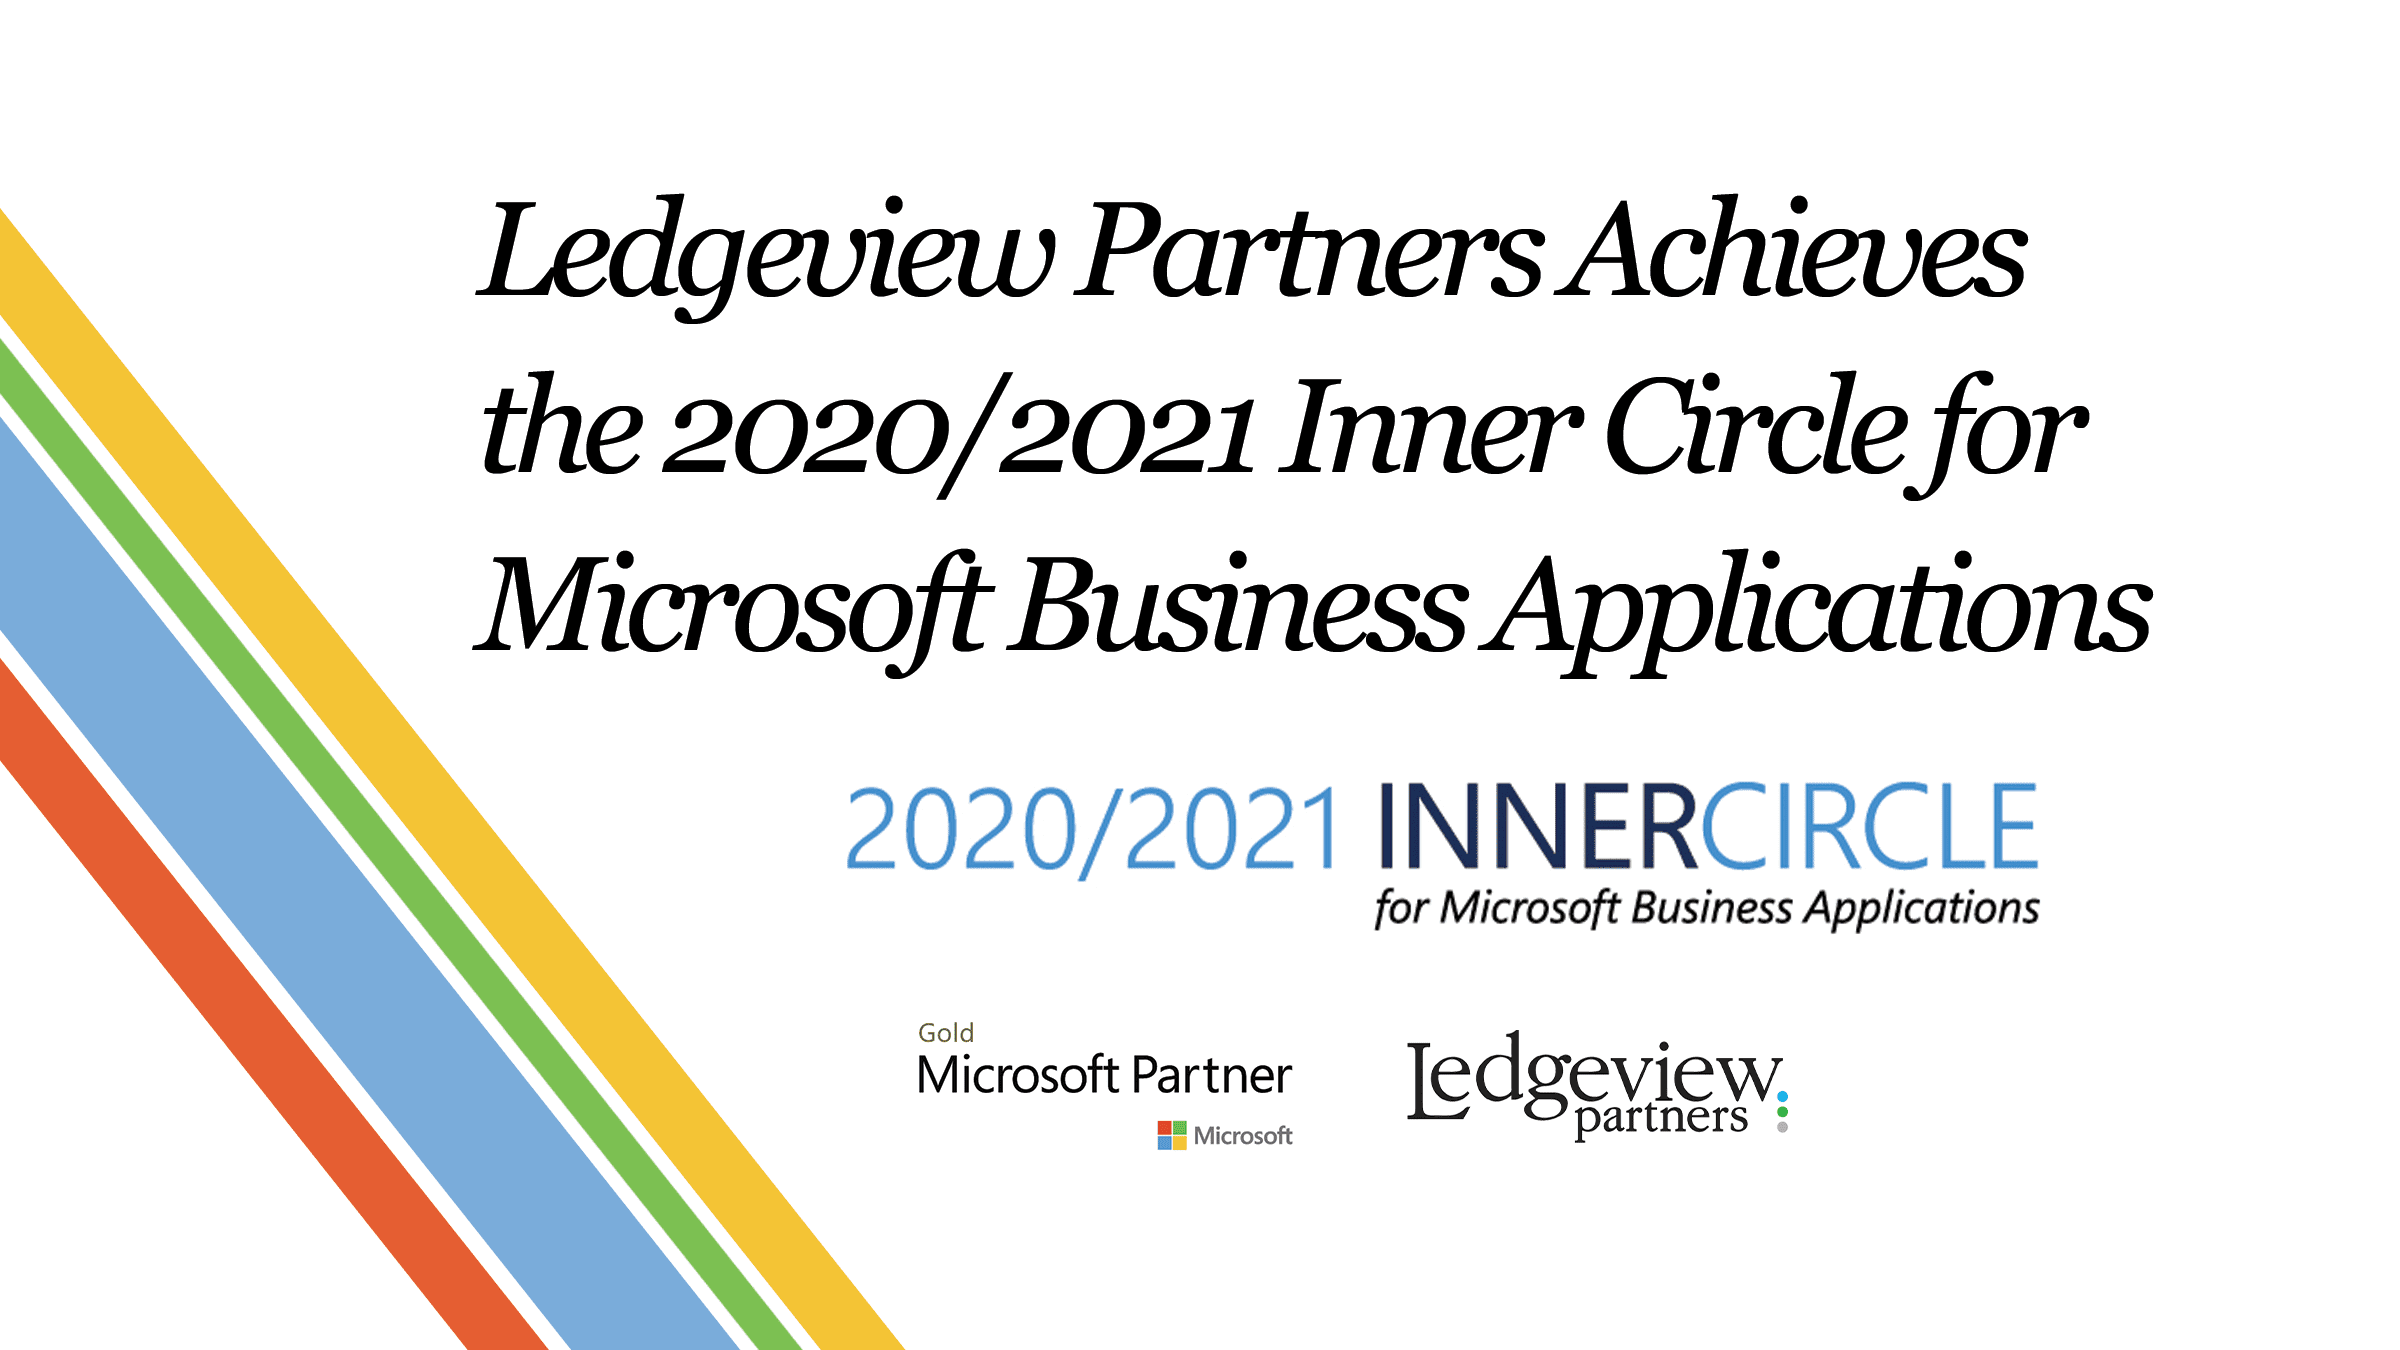 Press Release: Ledgeview Partners Achieves the 2020/2021 Inner Circle for Microsoft Business Applications